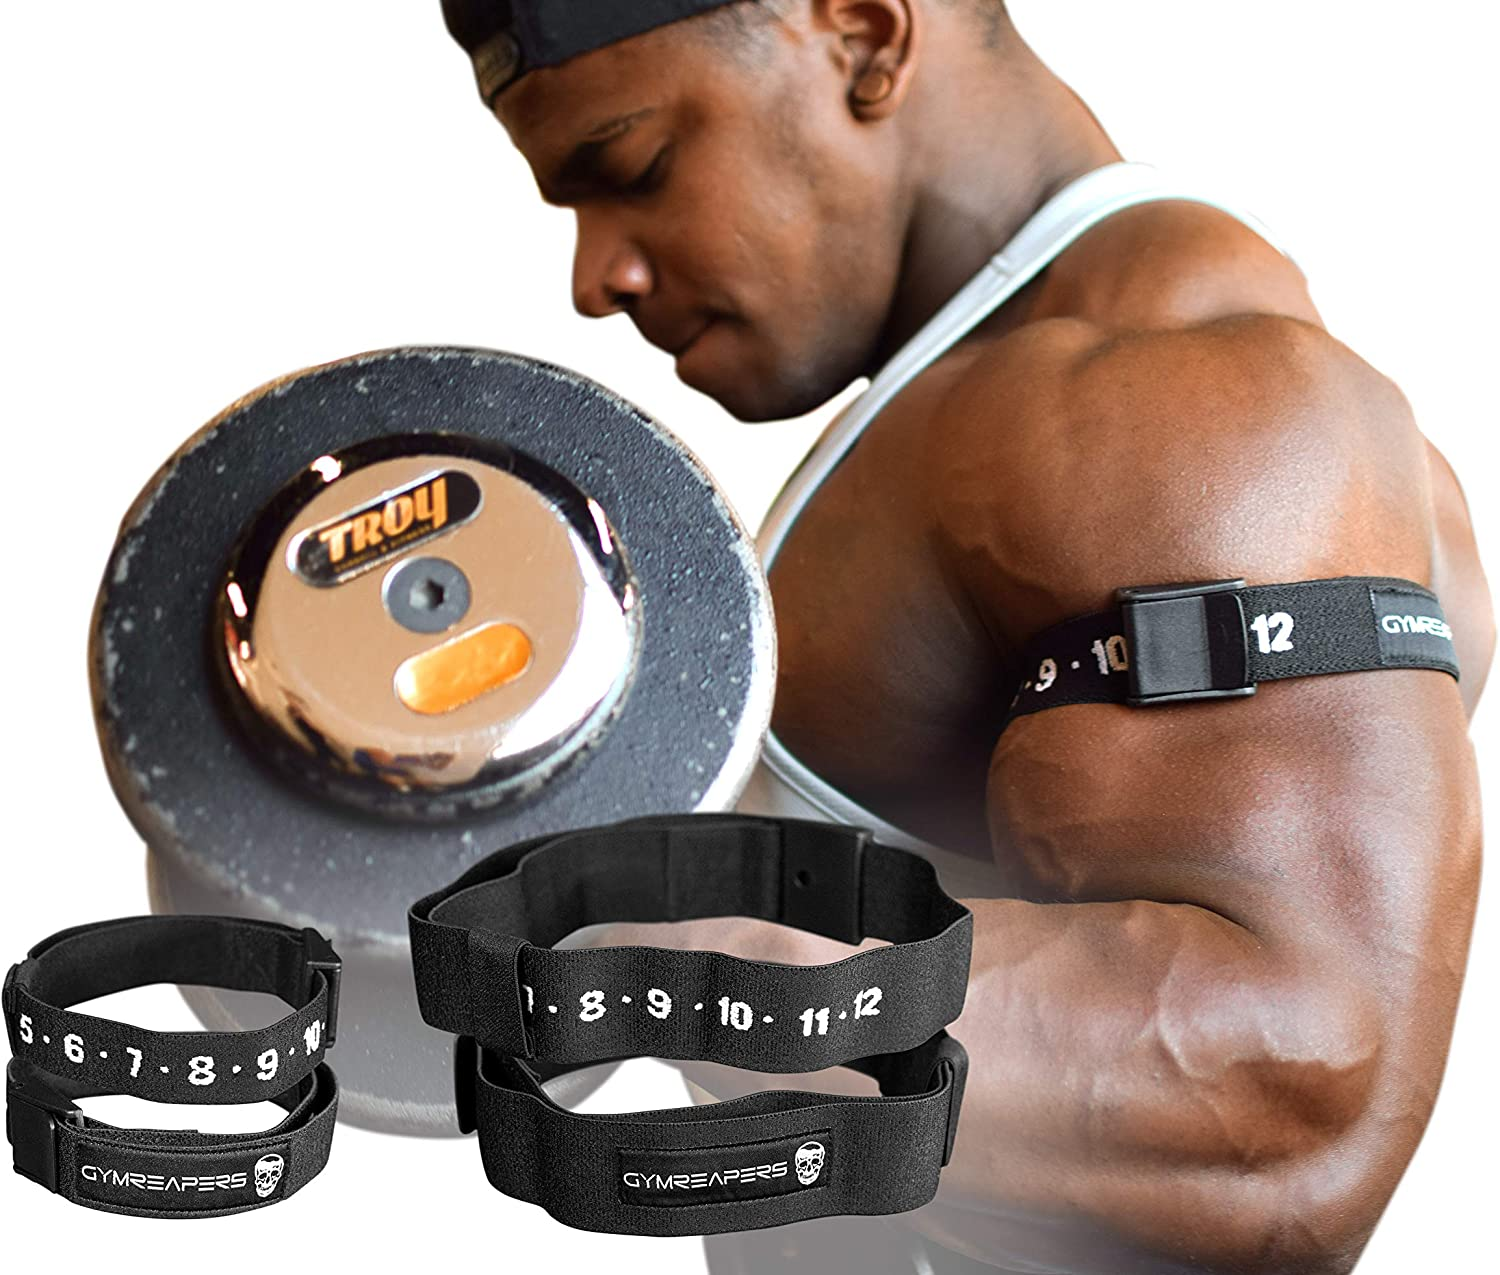 Harlem Training Bands Fitness Arm bands Blood Flow Restriction Occlusion Wraps